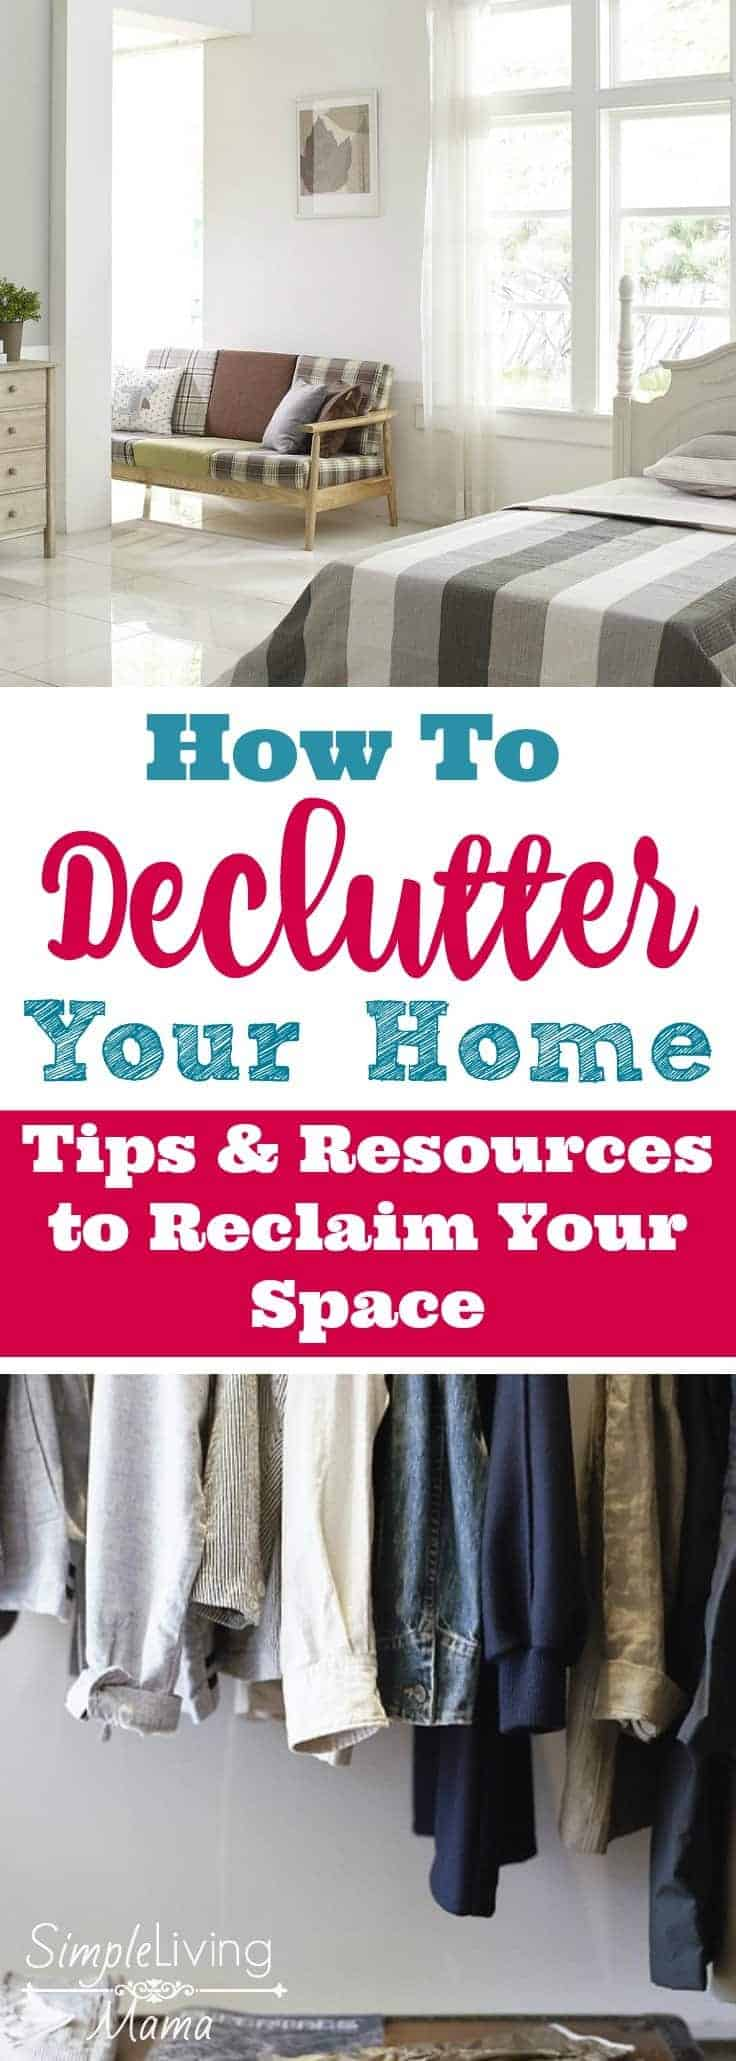 How to declutter your home. Tons of tips and resources to help you reclaim your space!